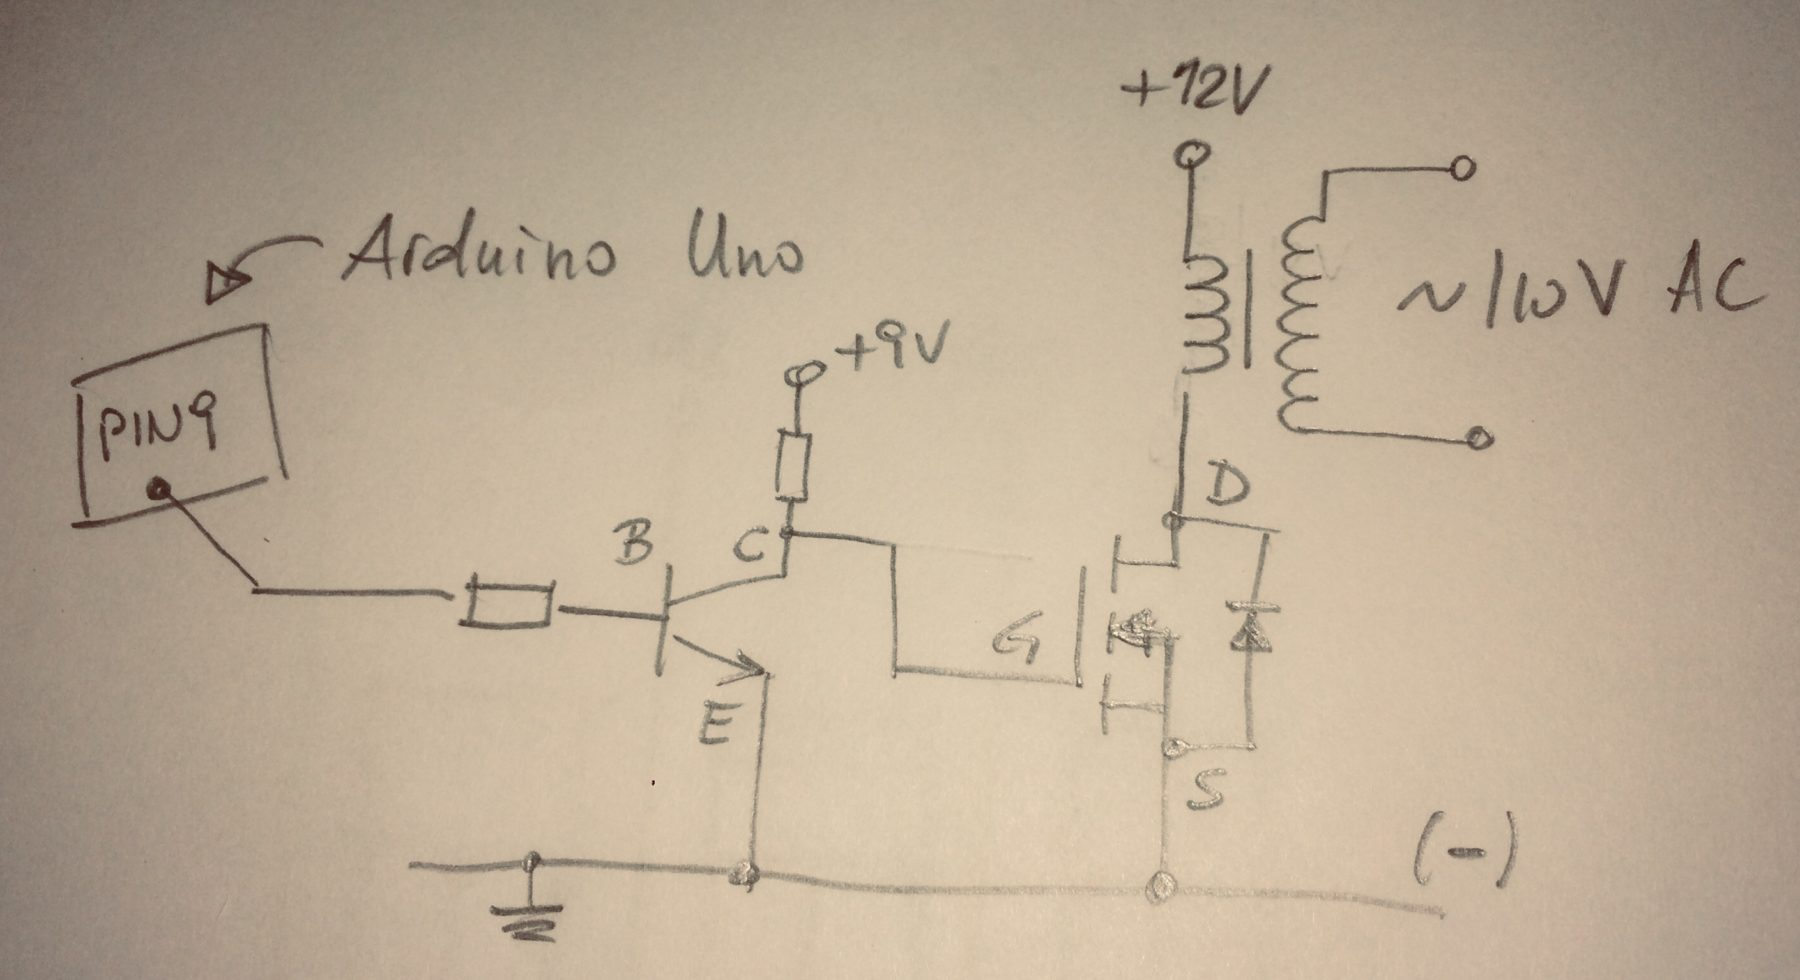 PWM circuit with Arduino Uno